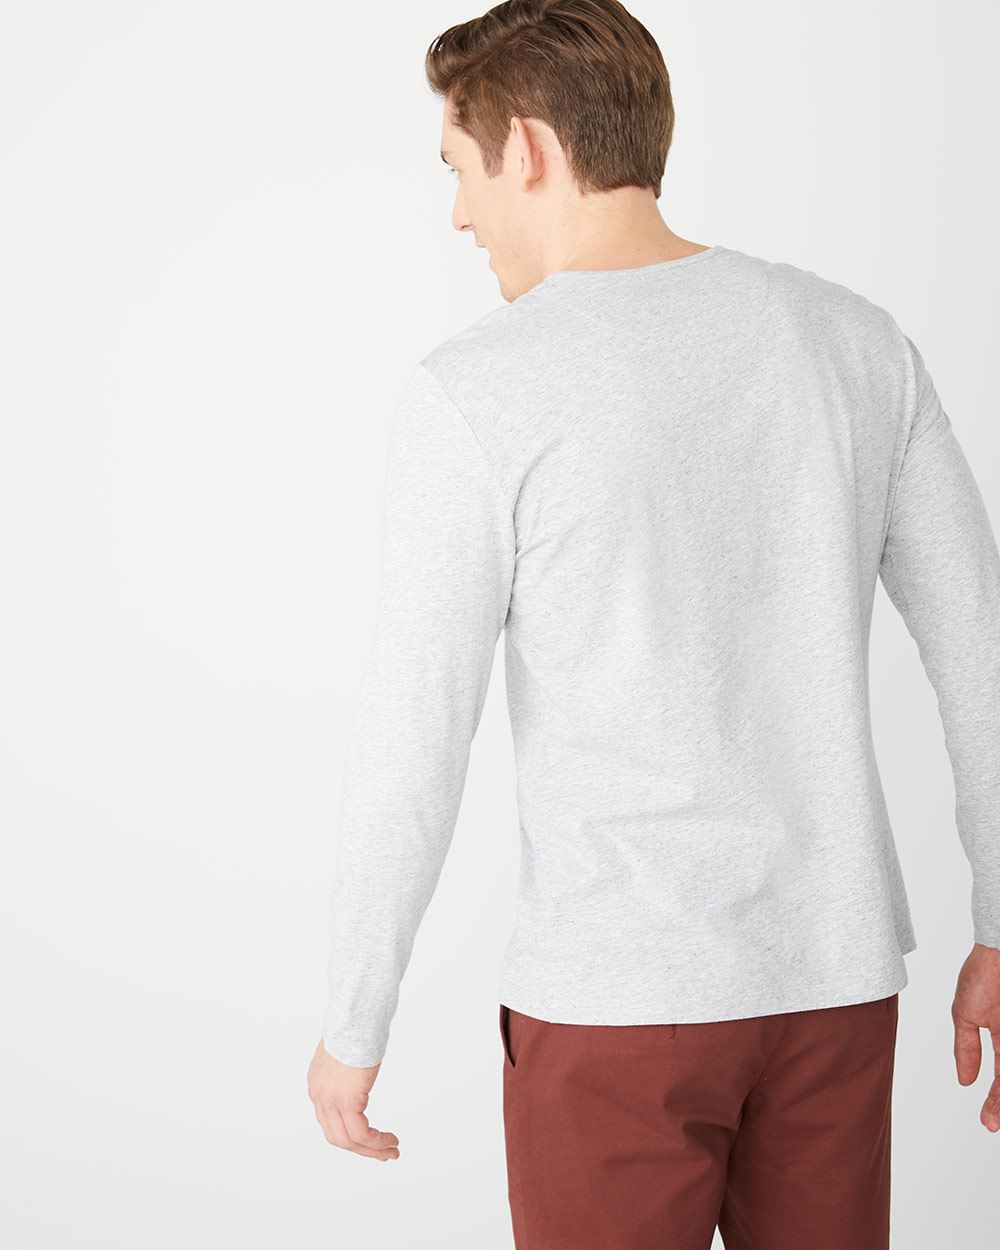 Long sleeve henley nep t-shirt